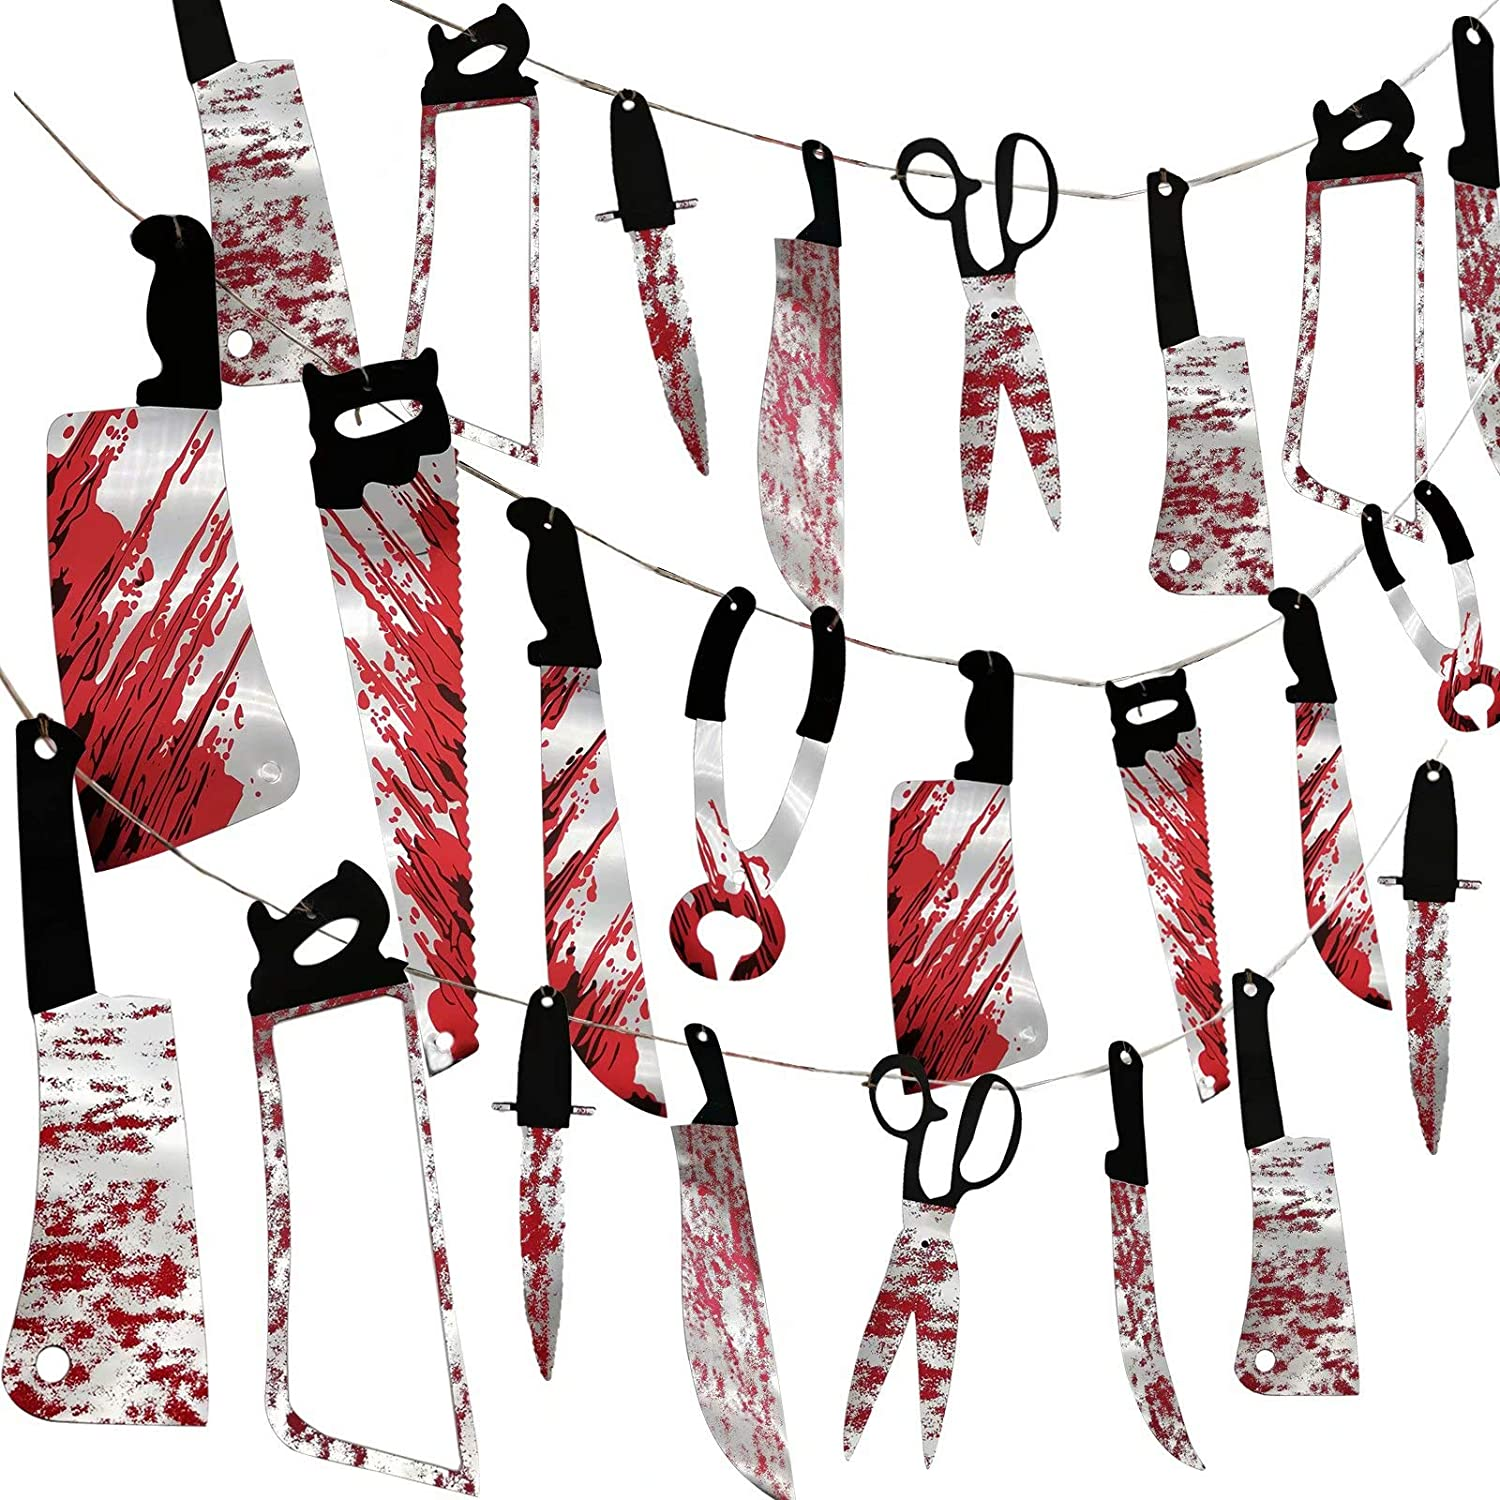 32PCS Halloween Bloody Garland Banner Props Halloween Decorations Halloween Zombie Vampire Party Decorations Supplies for Haunted House Bar Office Home Indoor Outdoor Yard Décor Weapons Hanging Banner